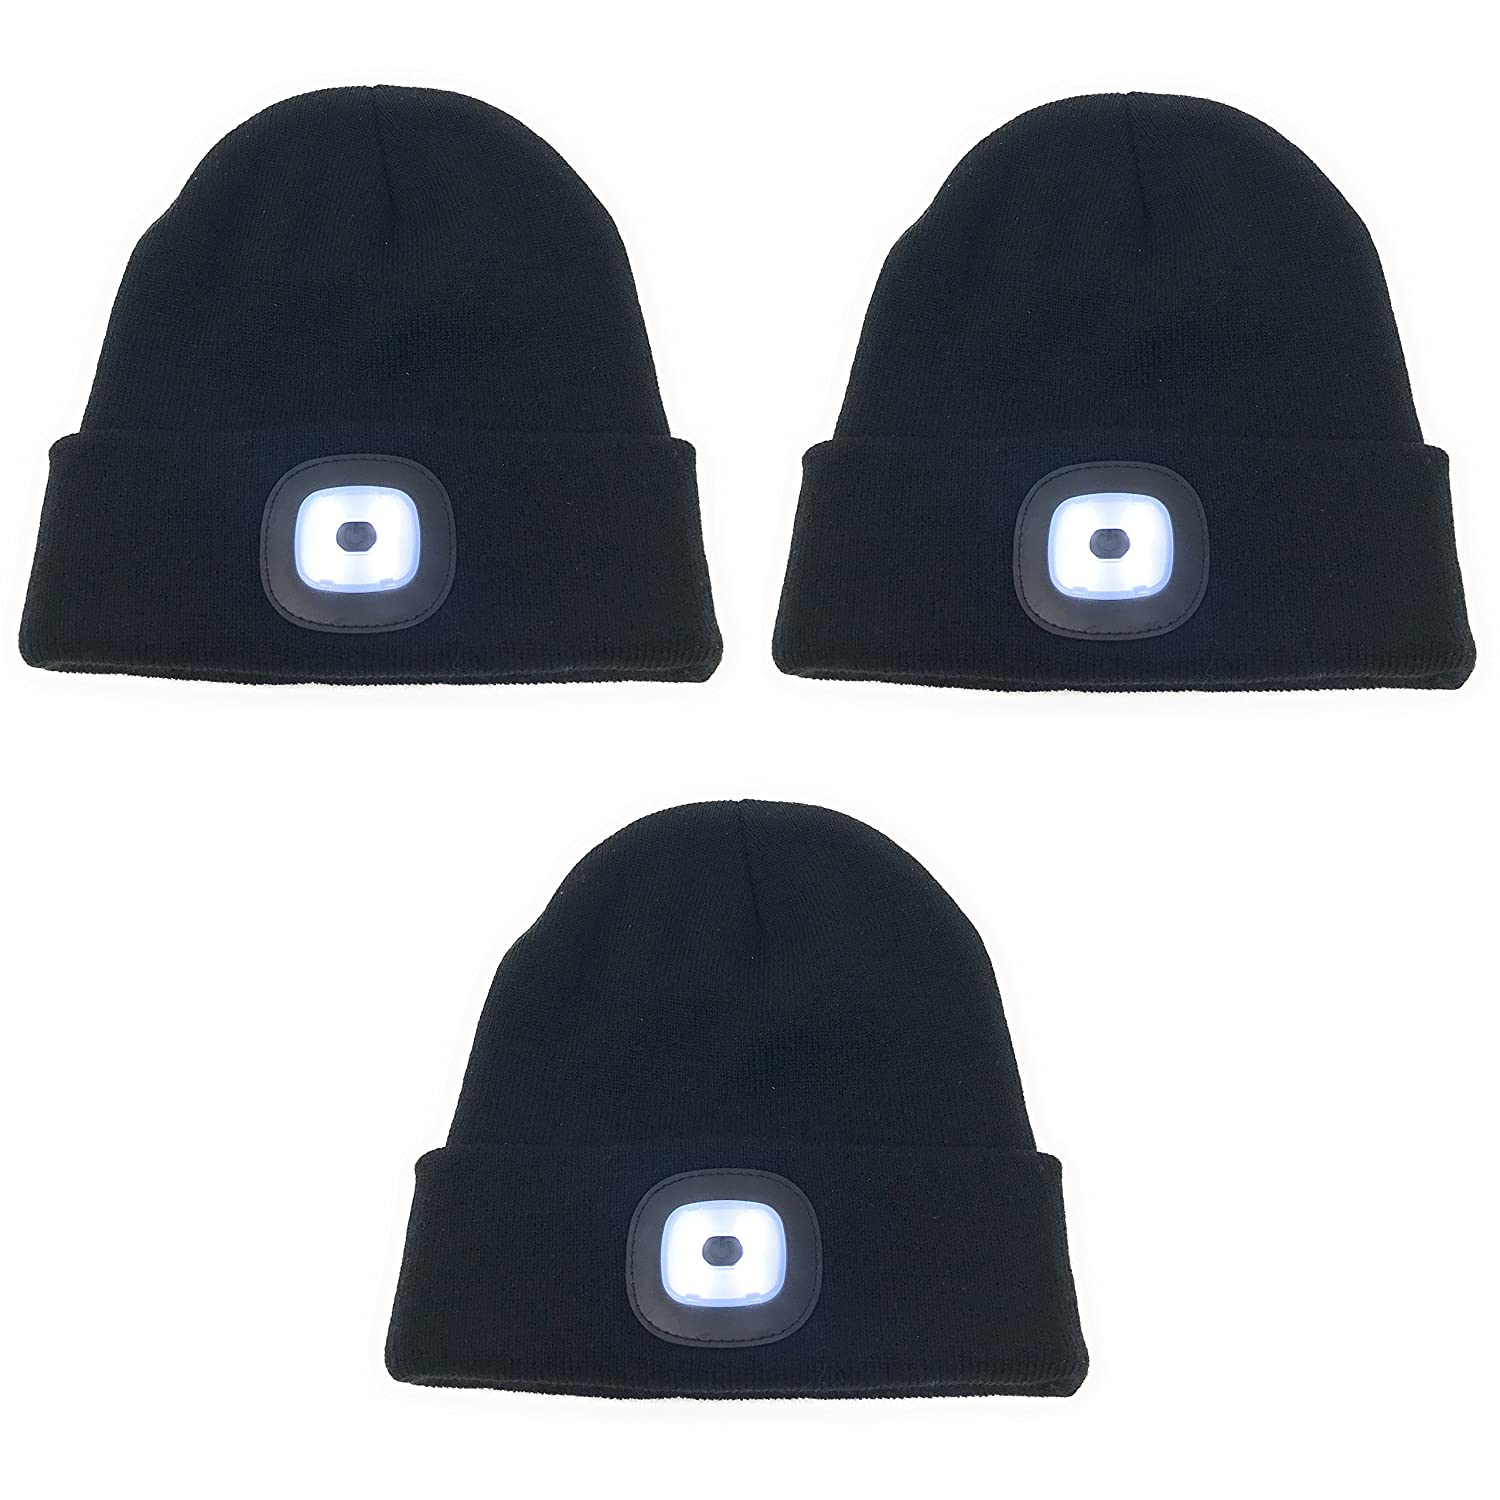 3-Pack Bulk LED Knit Beanie Stocking Caps Camping Light Flashlight - incl  batteries - Perfect for skiing 739fd4e5d84